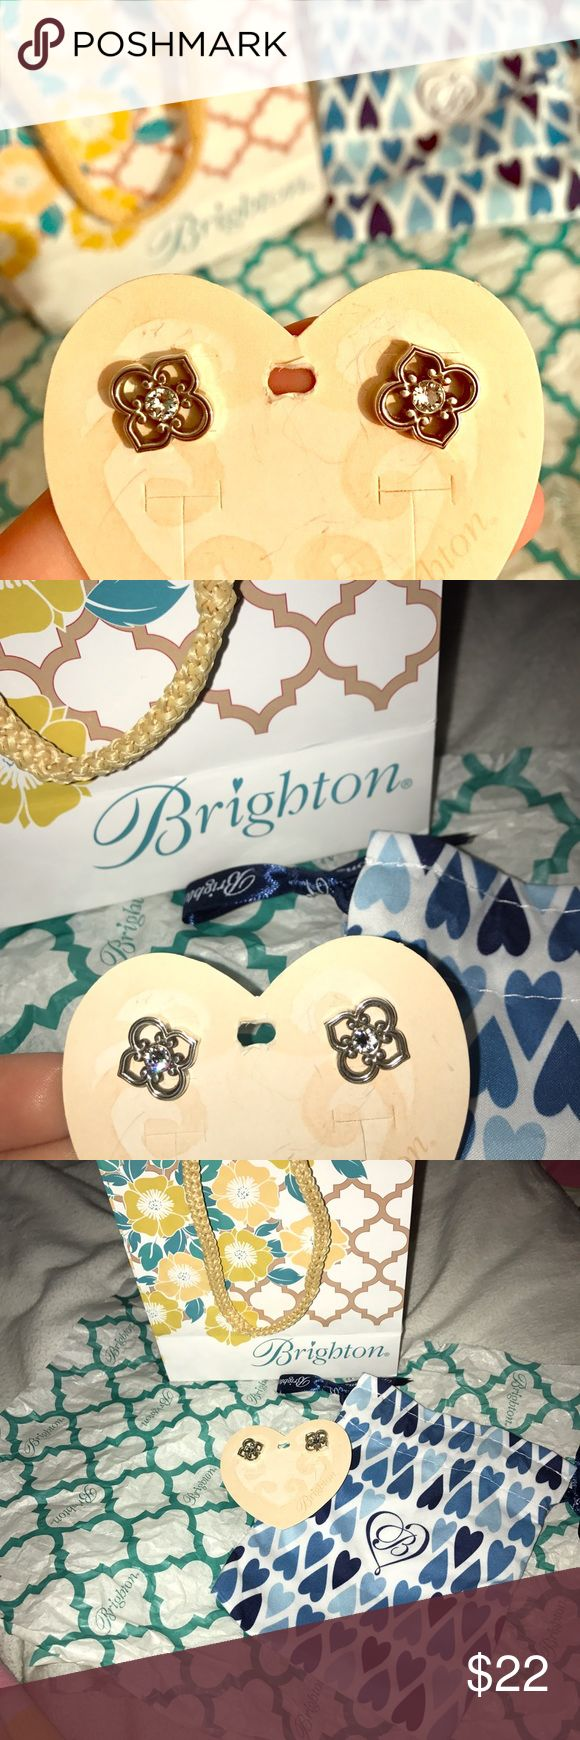 Brighton earrings! Cute Brighton earrings, never worn. Still with earring pouch and gift bag. Brighton Jewelry Earrings